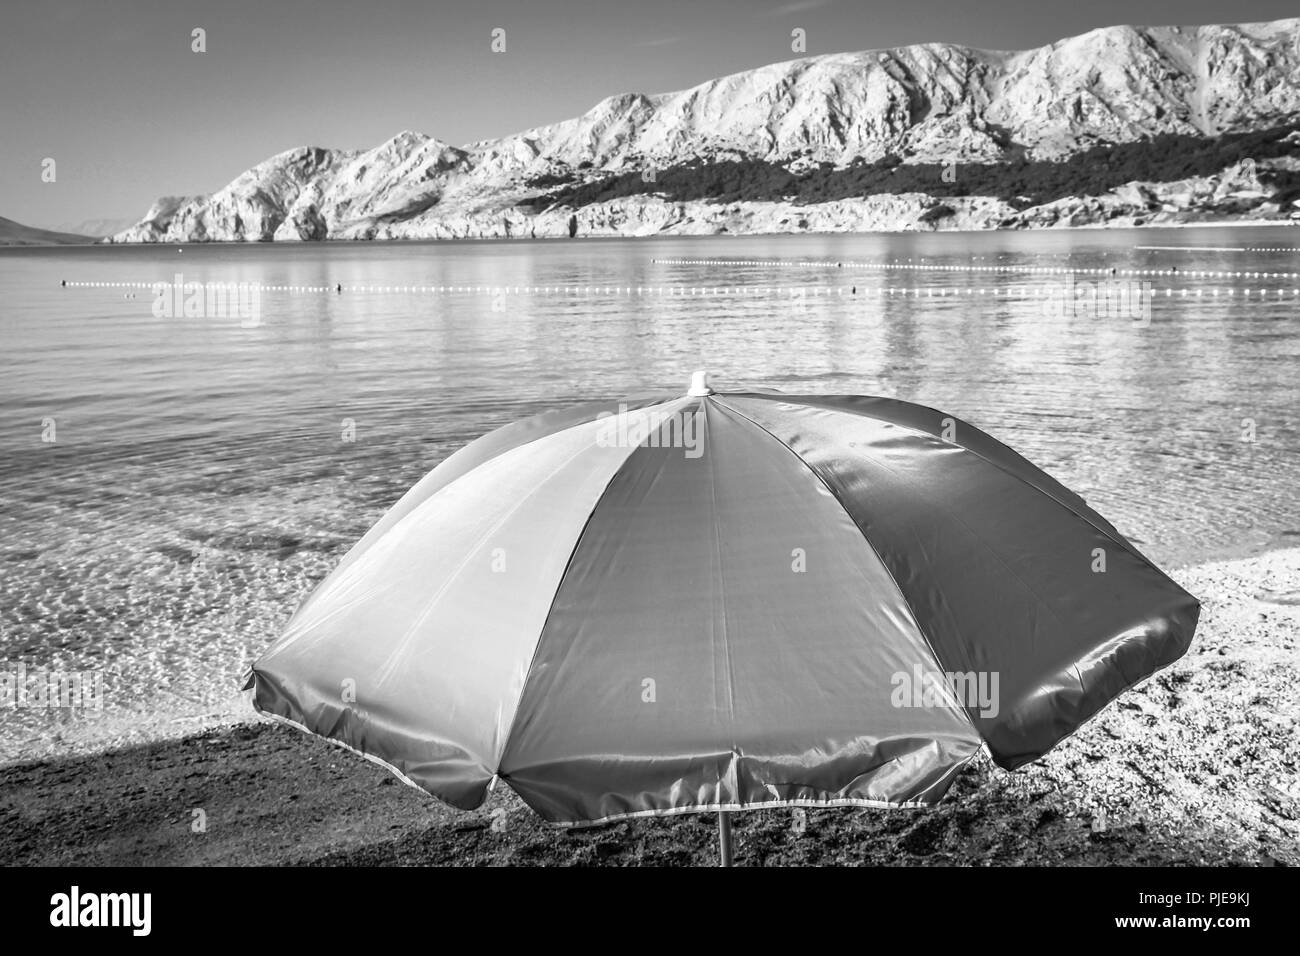 A lone umbrella on the beach at daybreak at the waters edge of the Adriatic at Baska on the island of Krk in Croatia - Stock Image